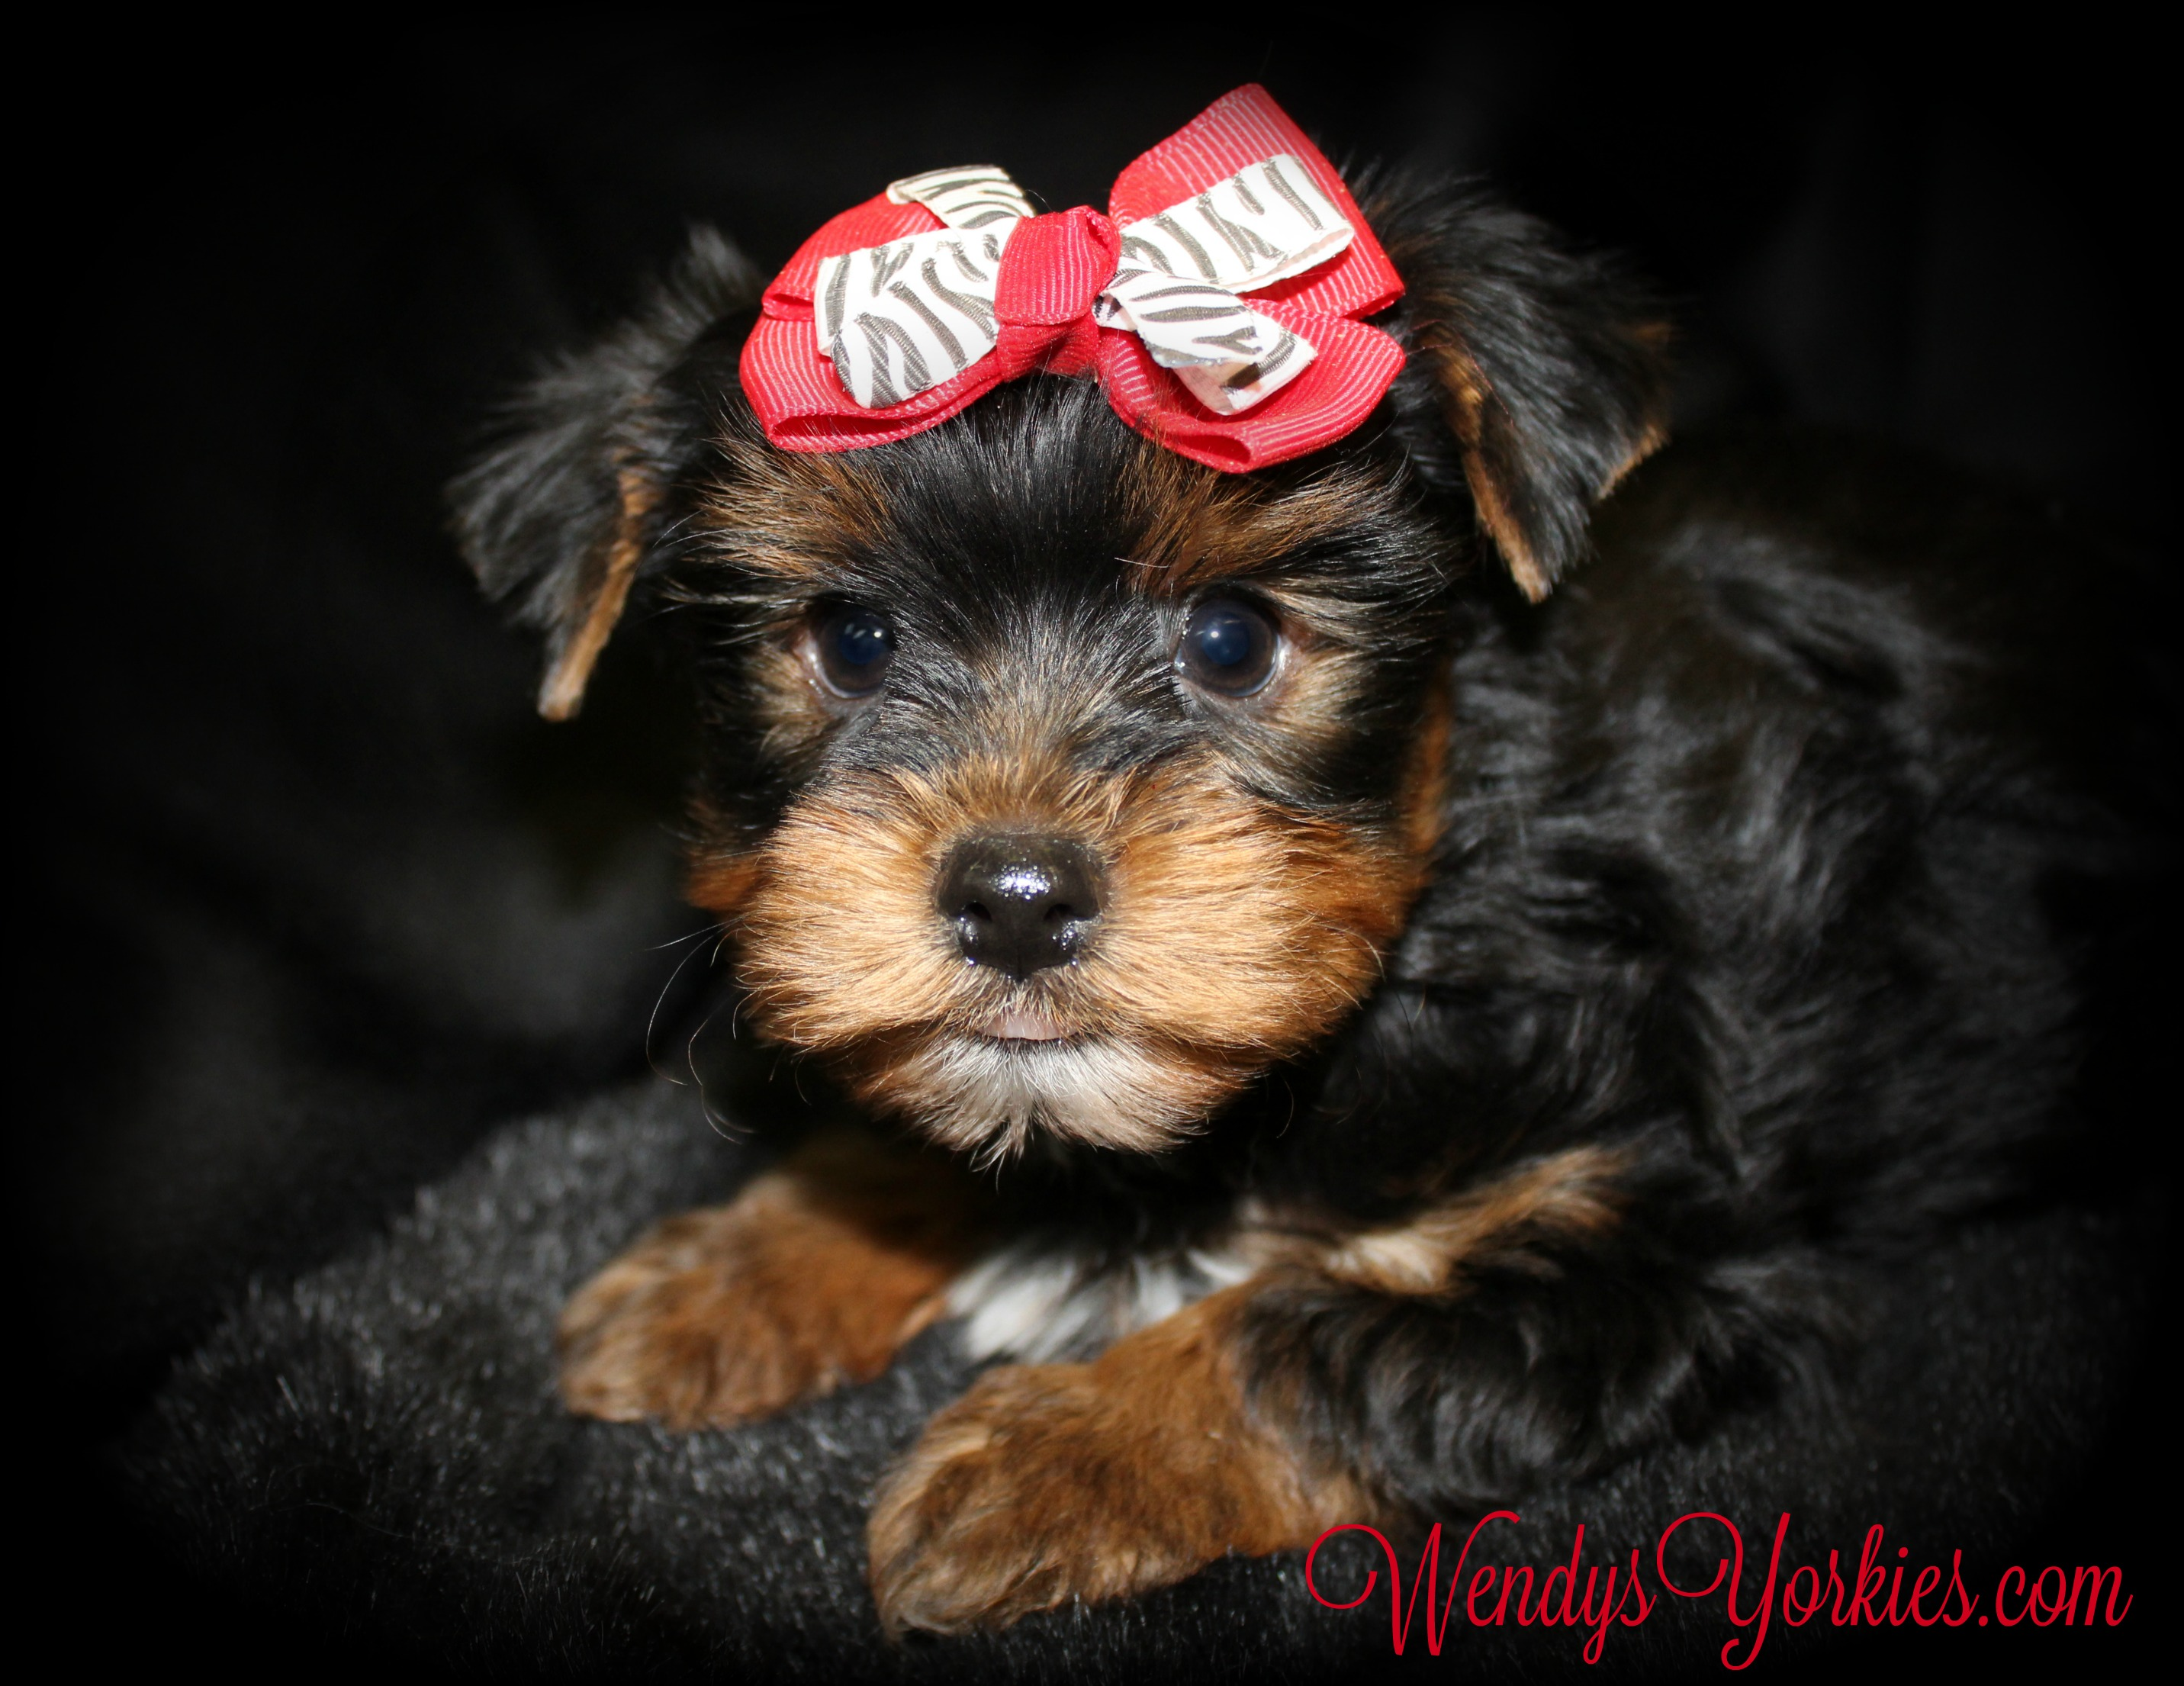 Toy Yorkie puppies for sale, WendysYorkies.com, Blossom M1